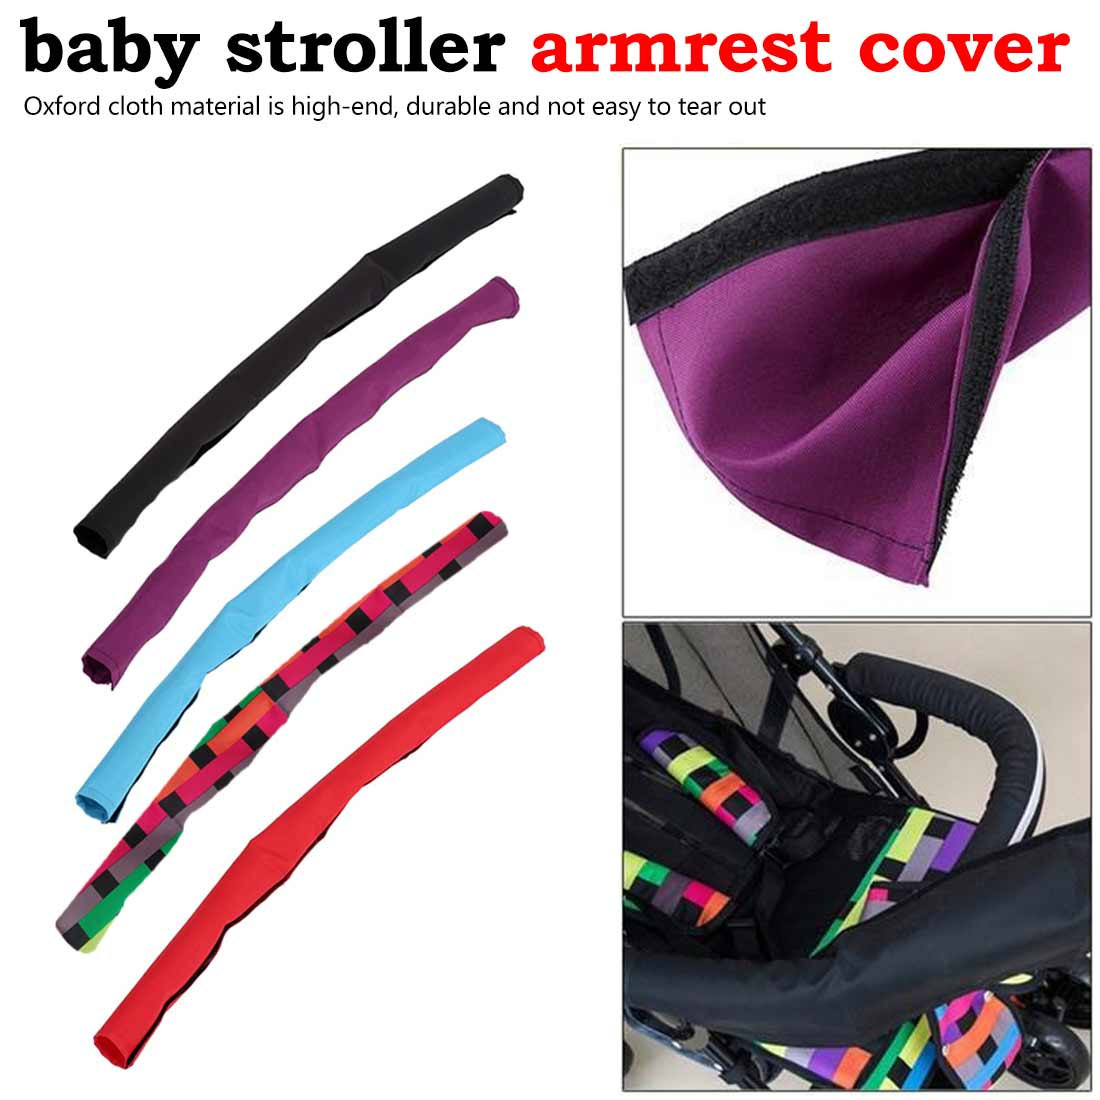 General Washable Durable Sweatproof Stroller Arms Pram Stroller Accessories Soft  Armrest Cover Cloth Case  Baby Stroller Access